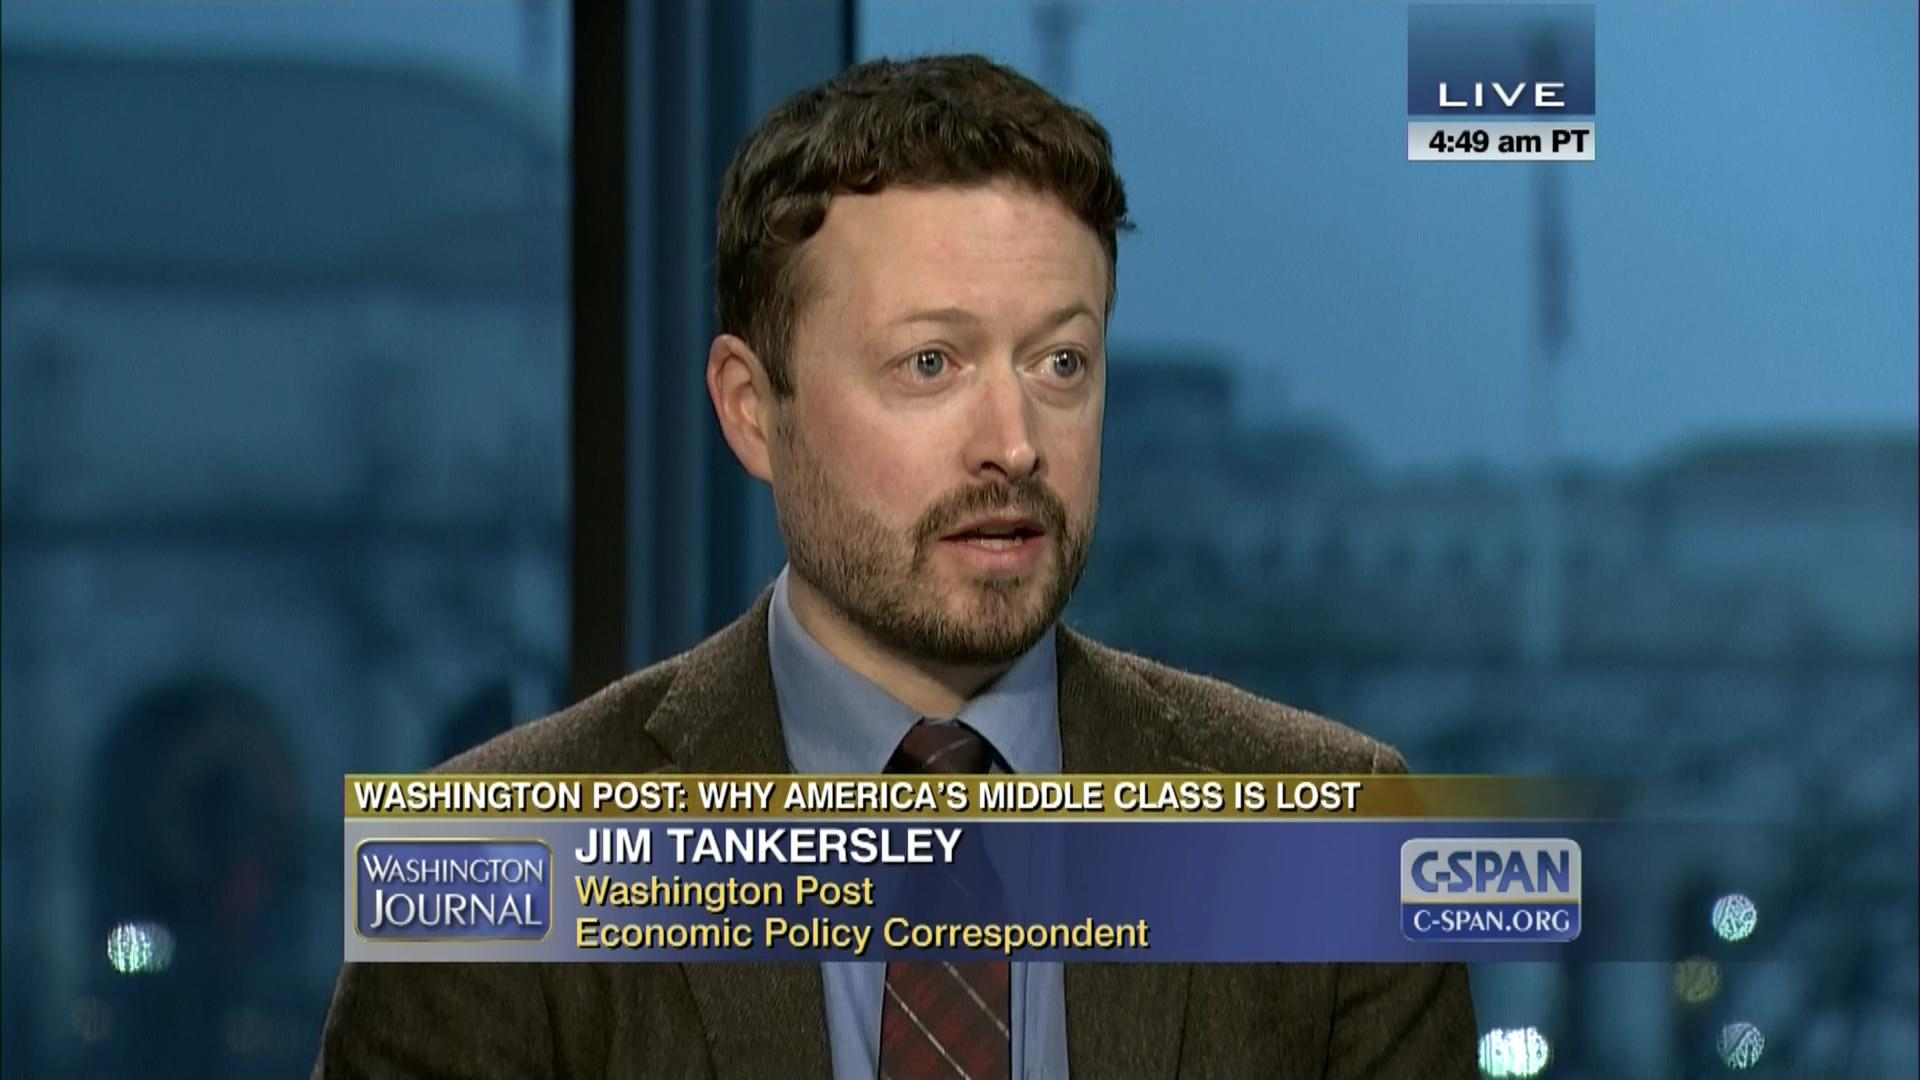 Washington Journal Jim Tankersley Economic Struggles Middle Class